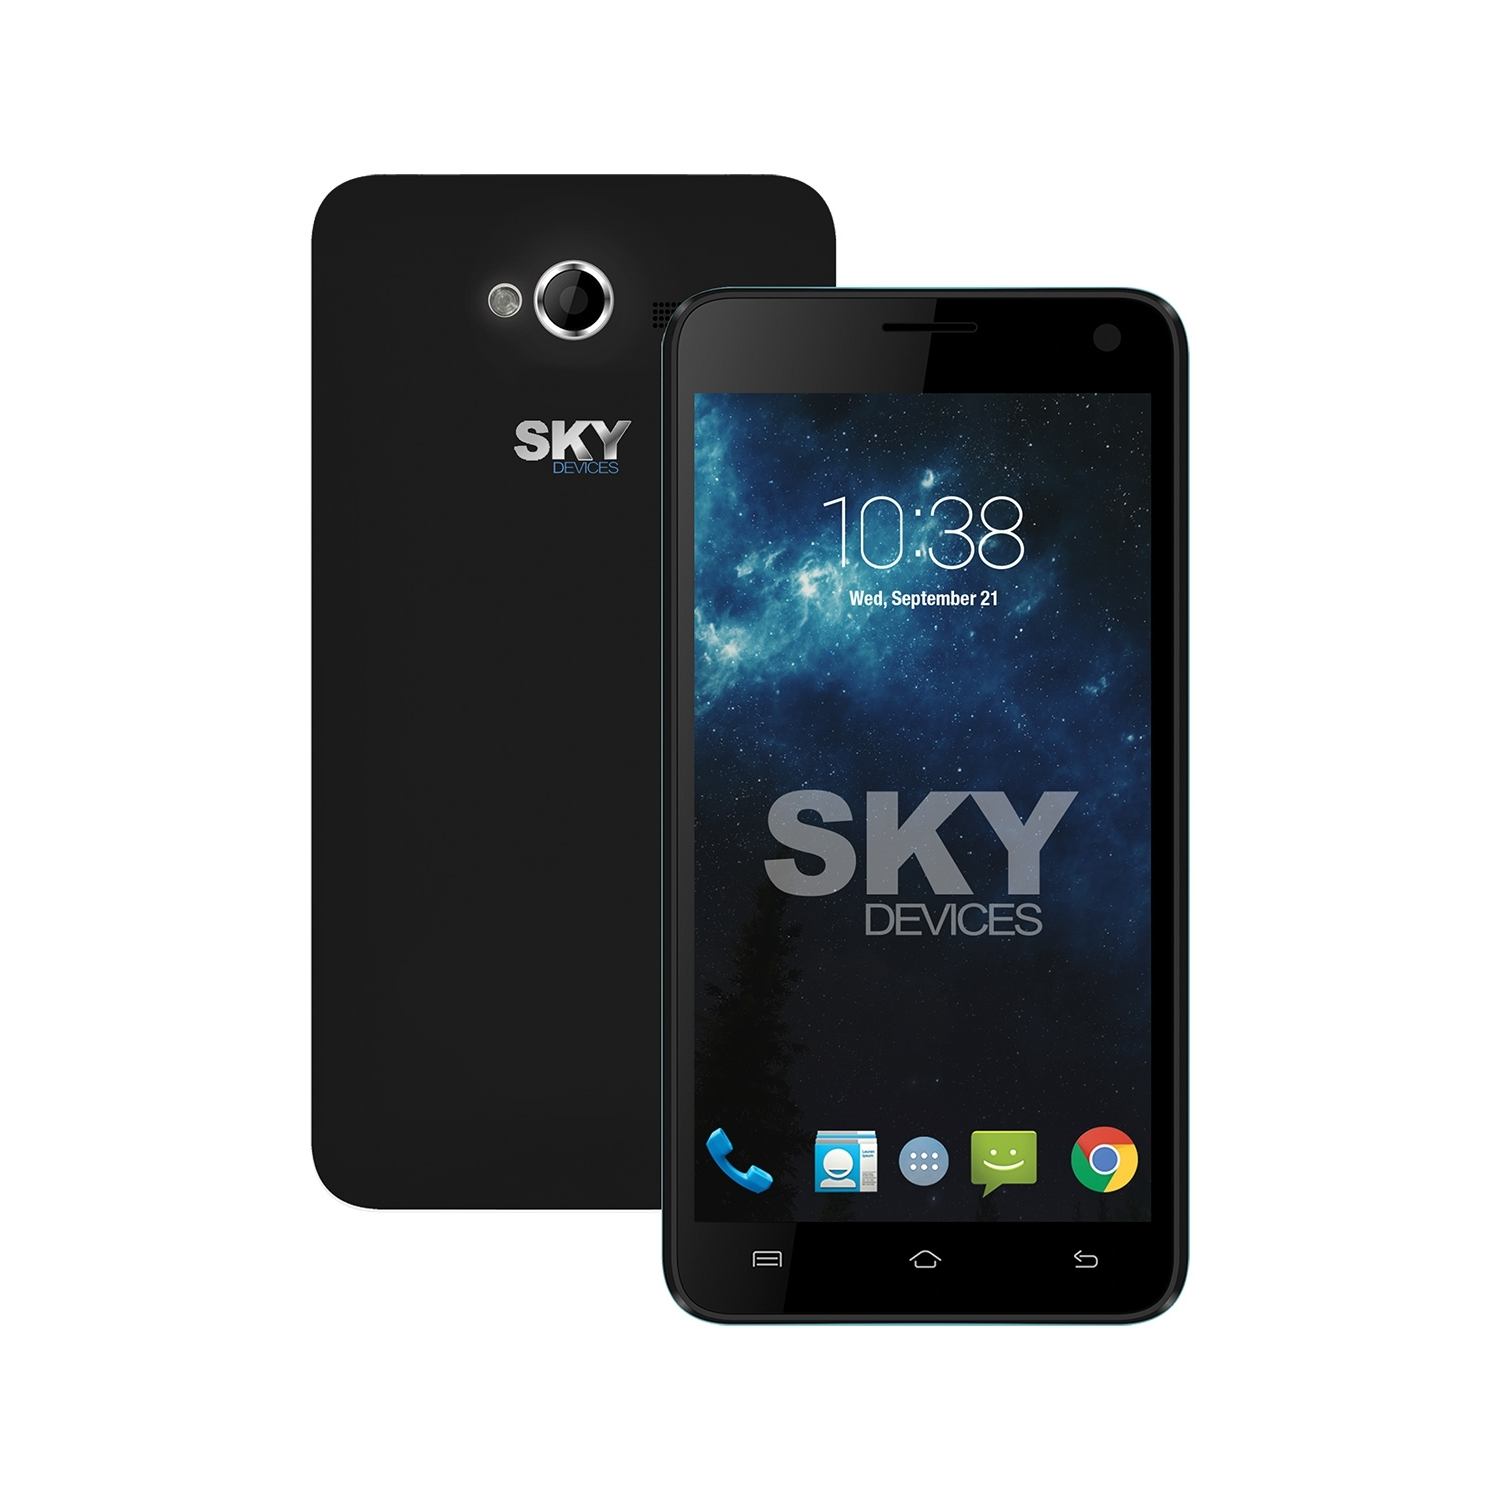 Sky Devices Elite 5.0LW 850/1700/1900 8GB 4G LTE Android Unlocked,Black